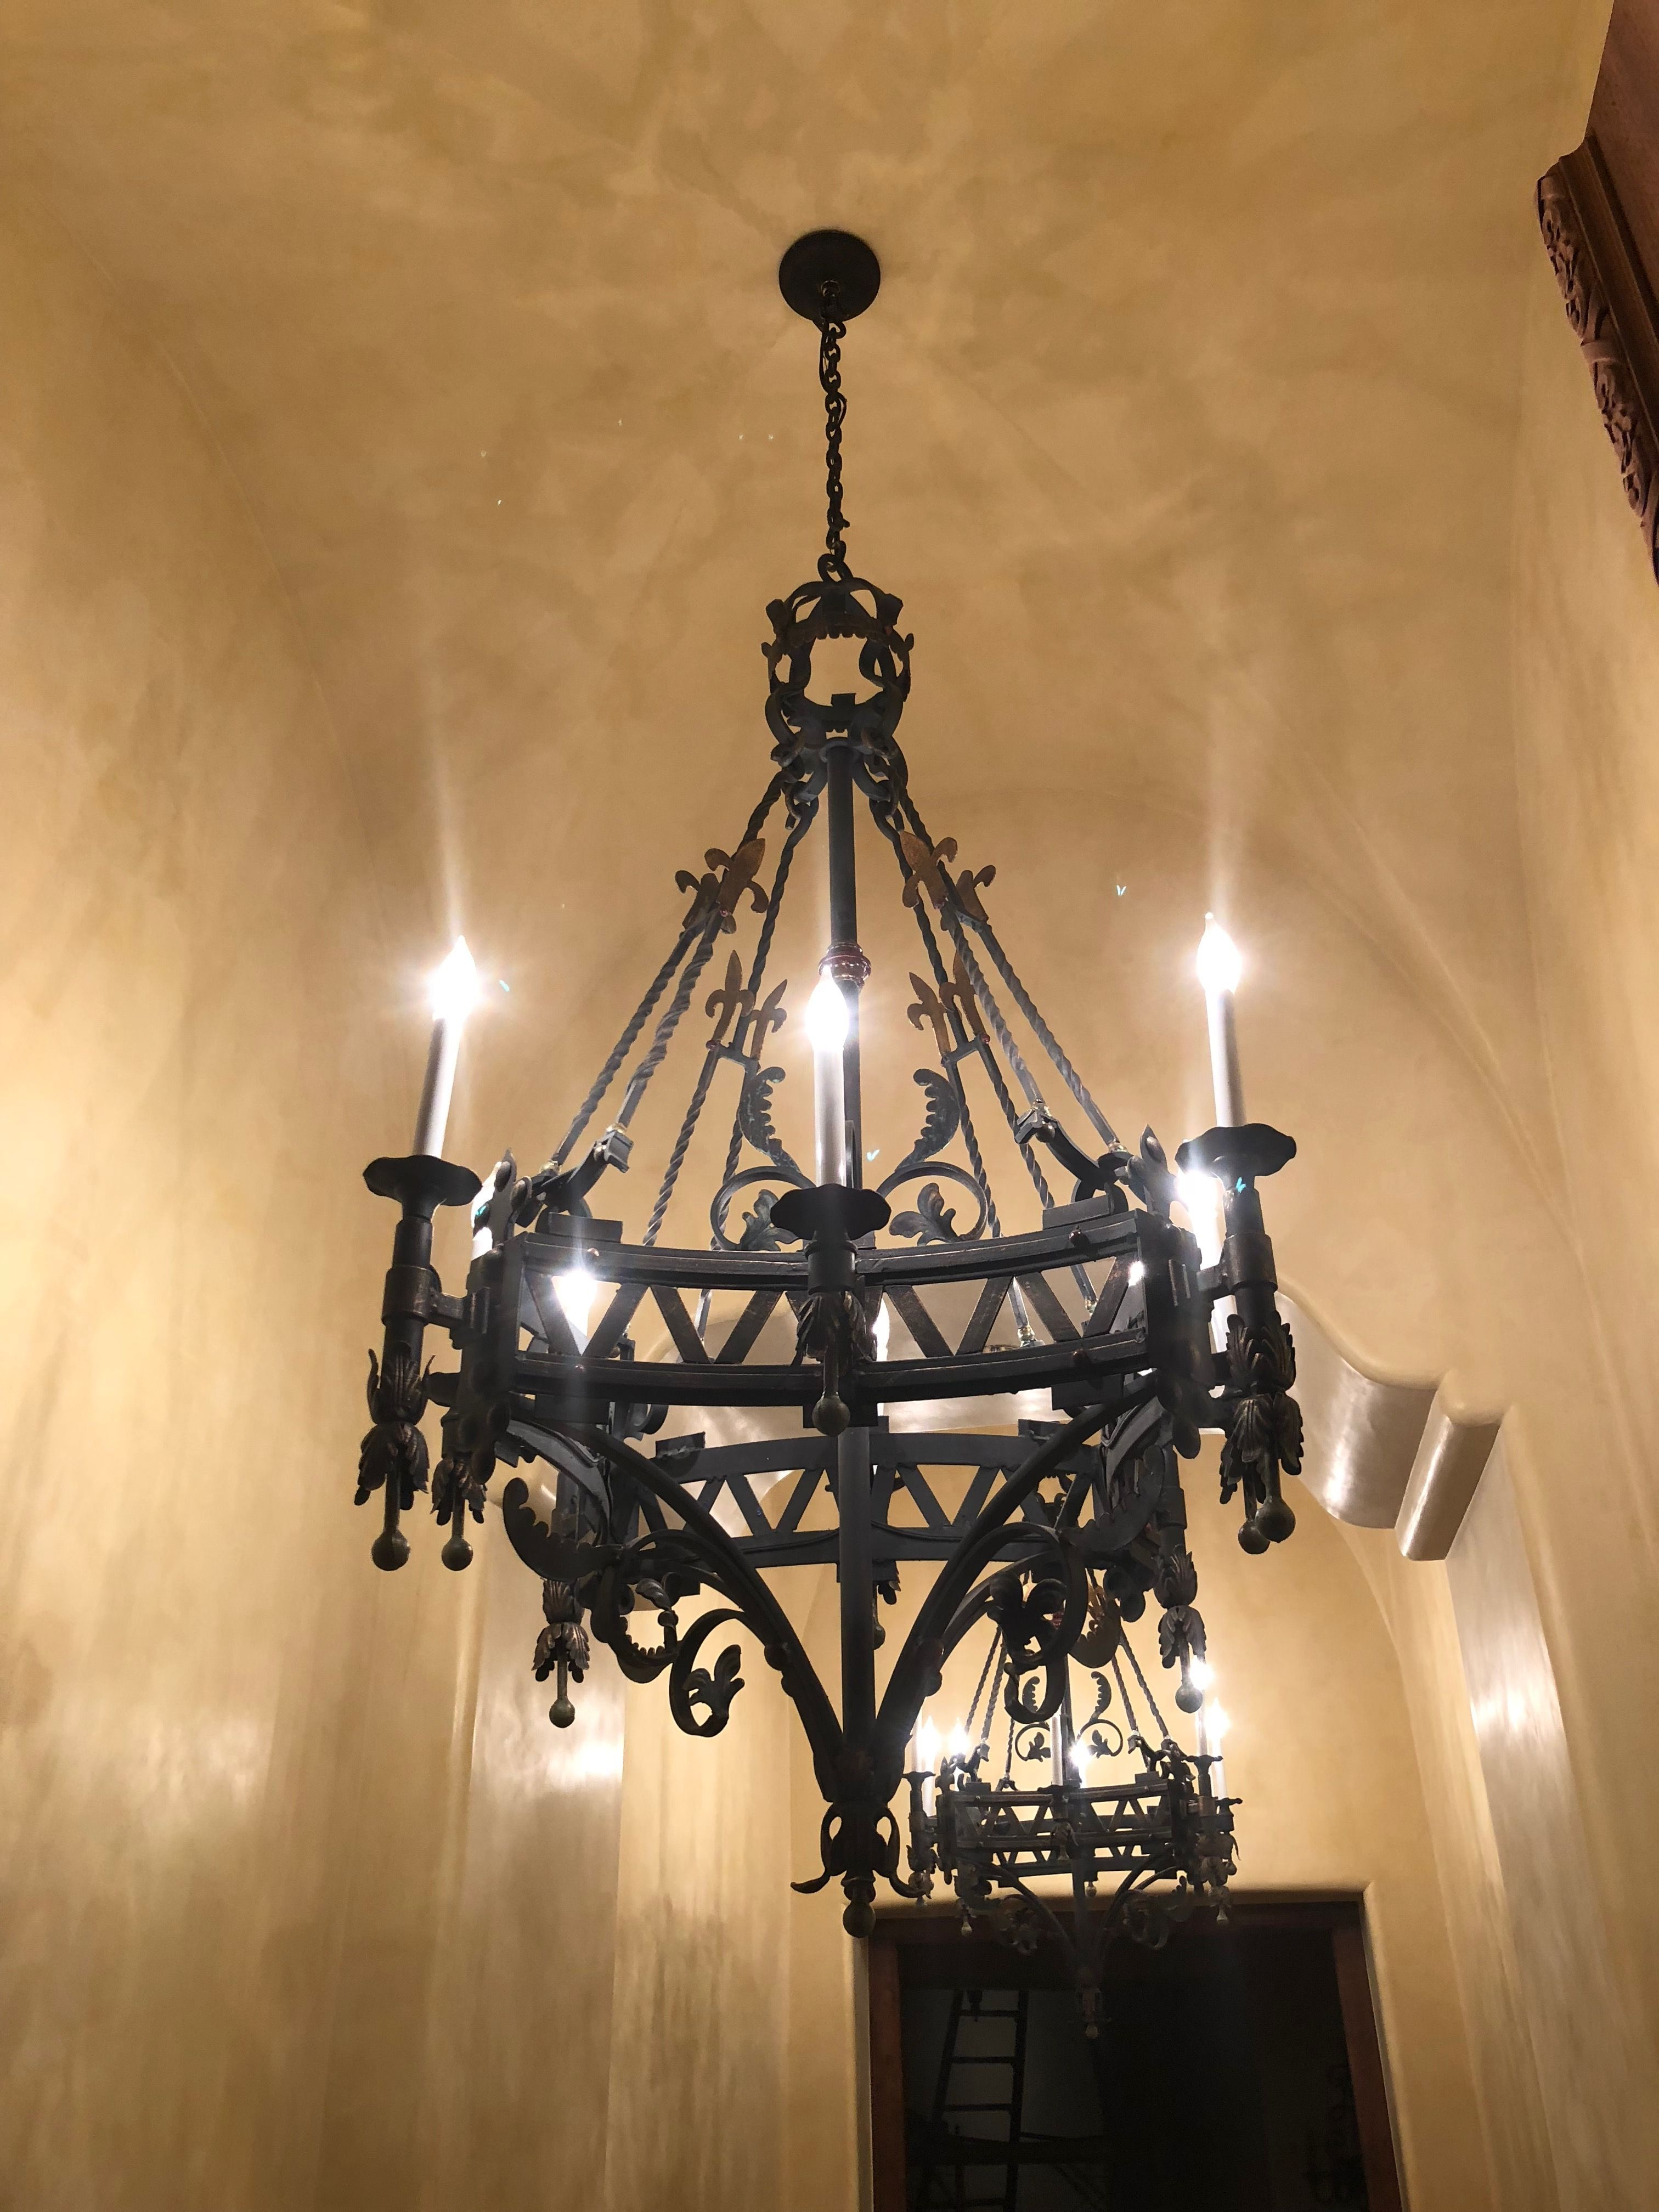 Custom Chandelier Custom Chandelier Iron Chandeliers Wrought